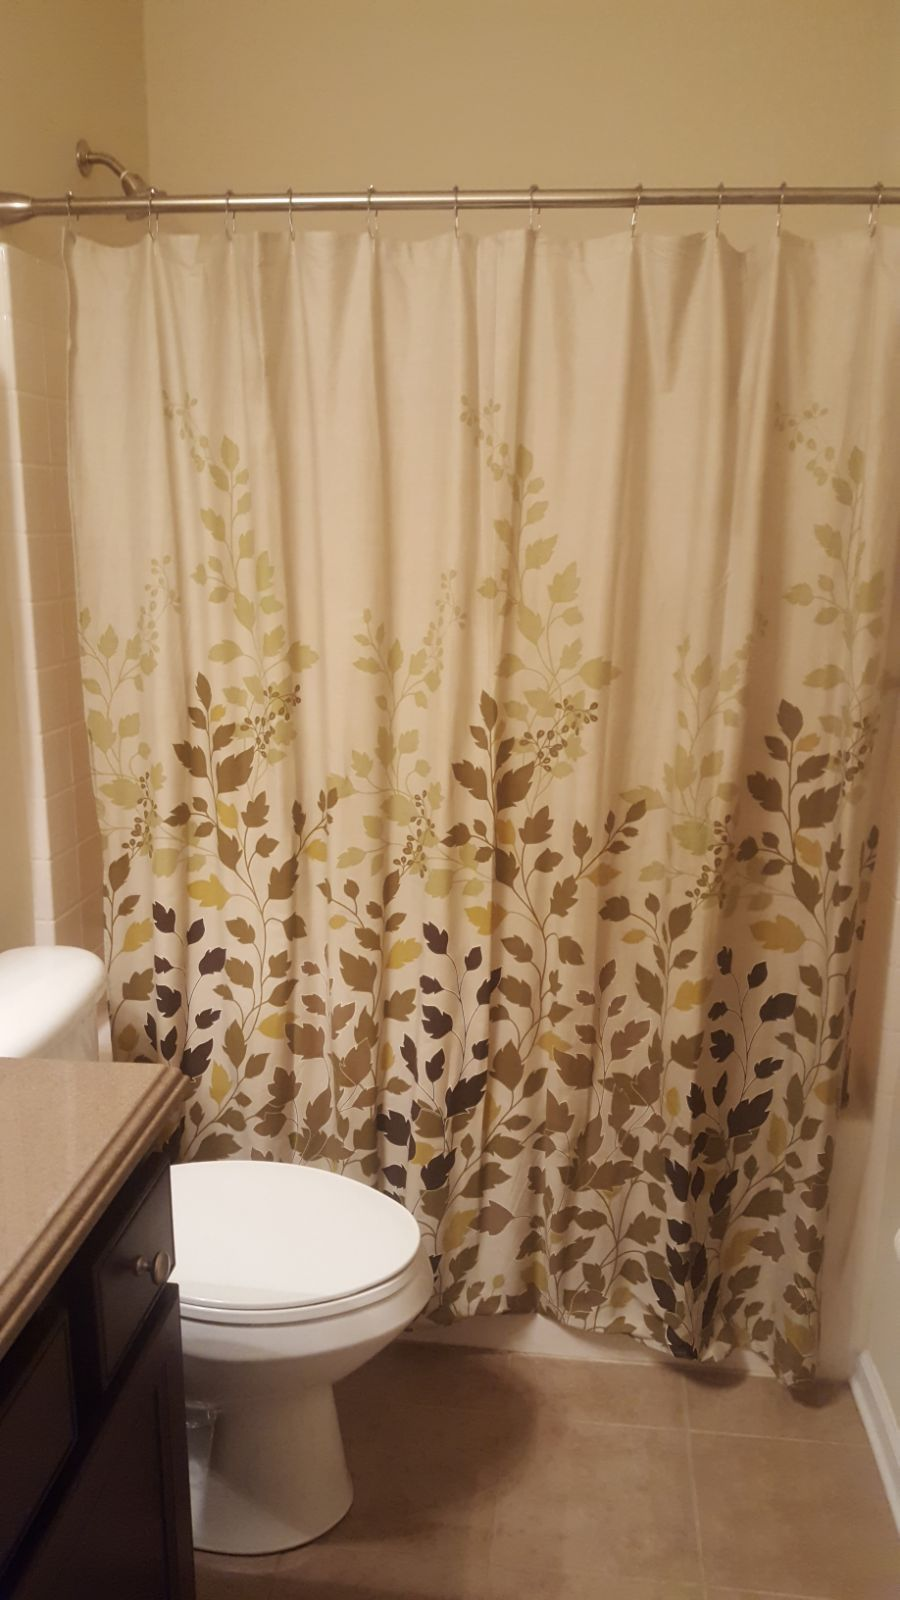 Awesome 6 Ft Shower Curtain Part - 7: Leaves 6 Ft Shower Curtain